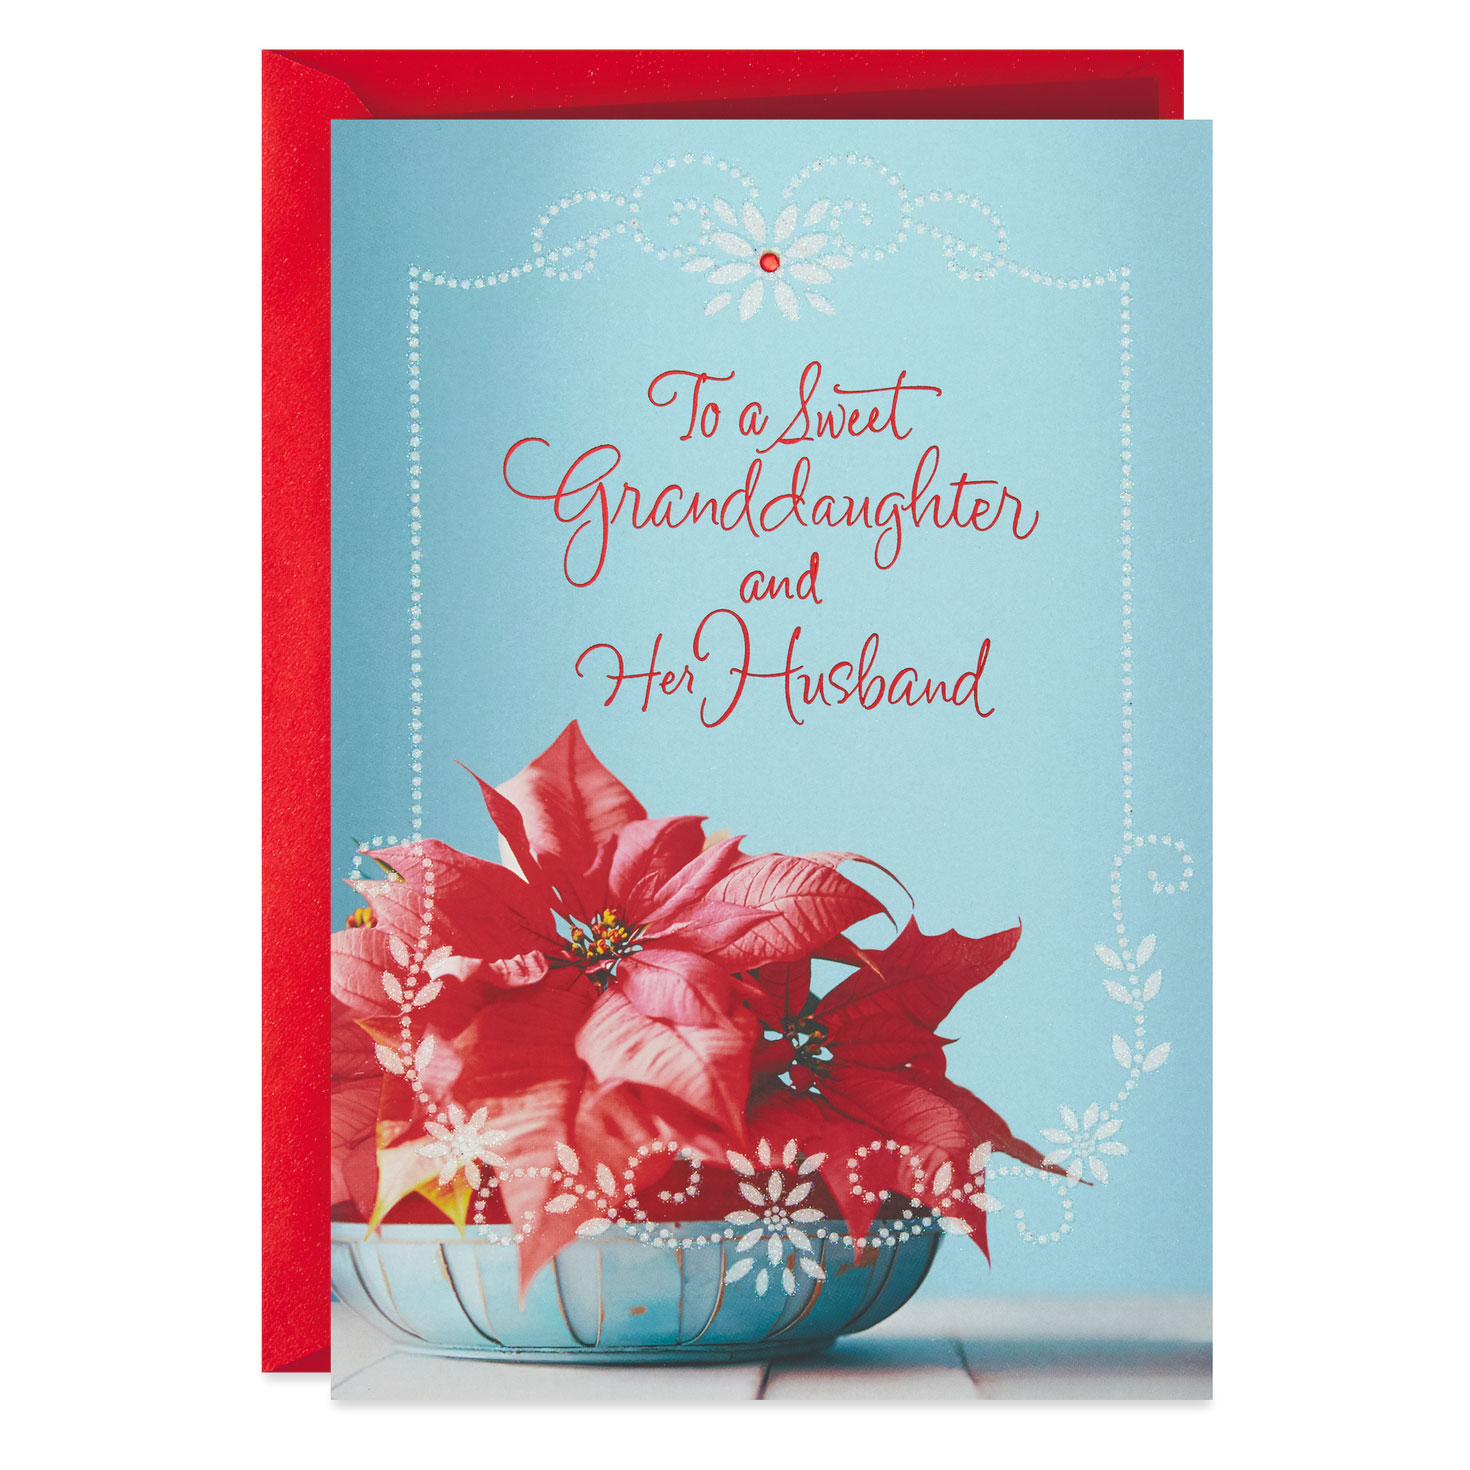 Poinsettias Christmas Card For Granddaughter And Her